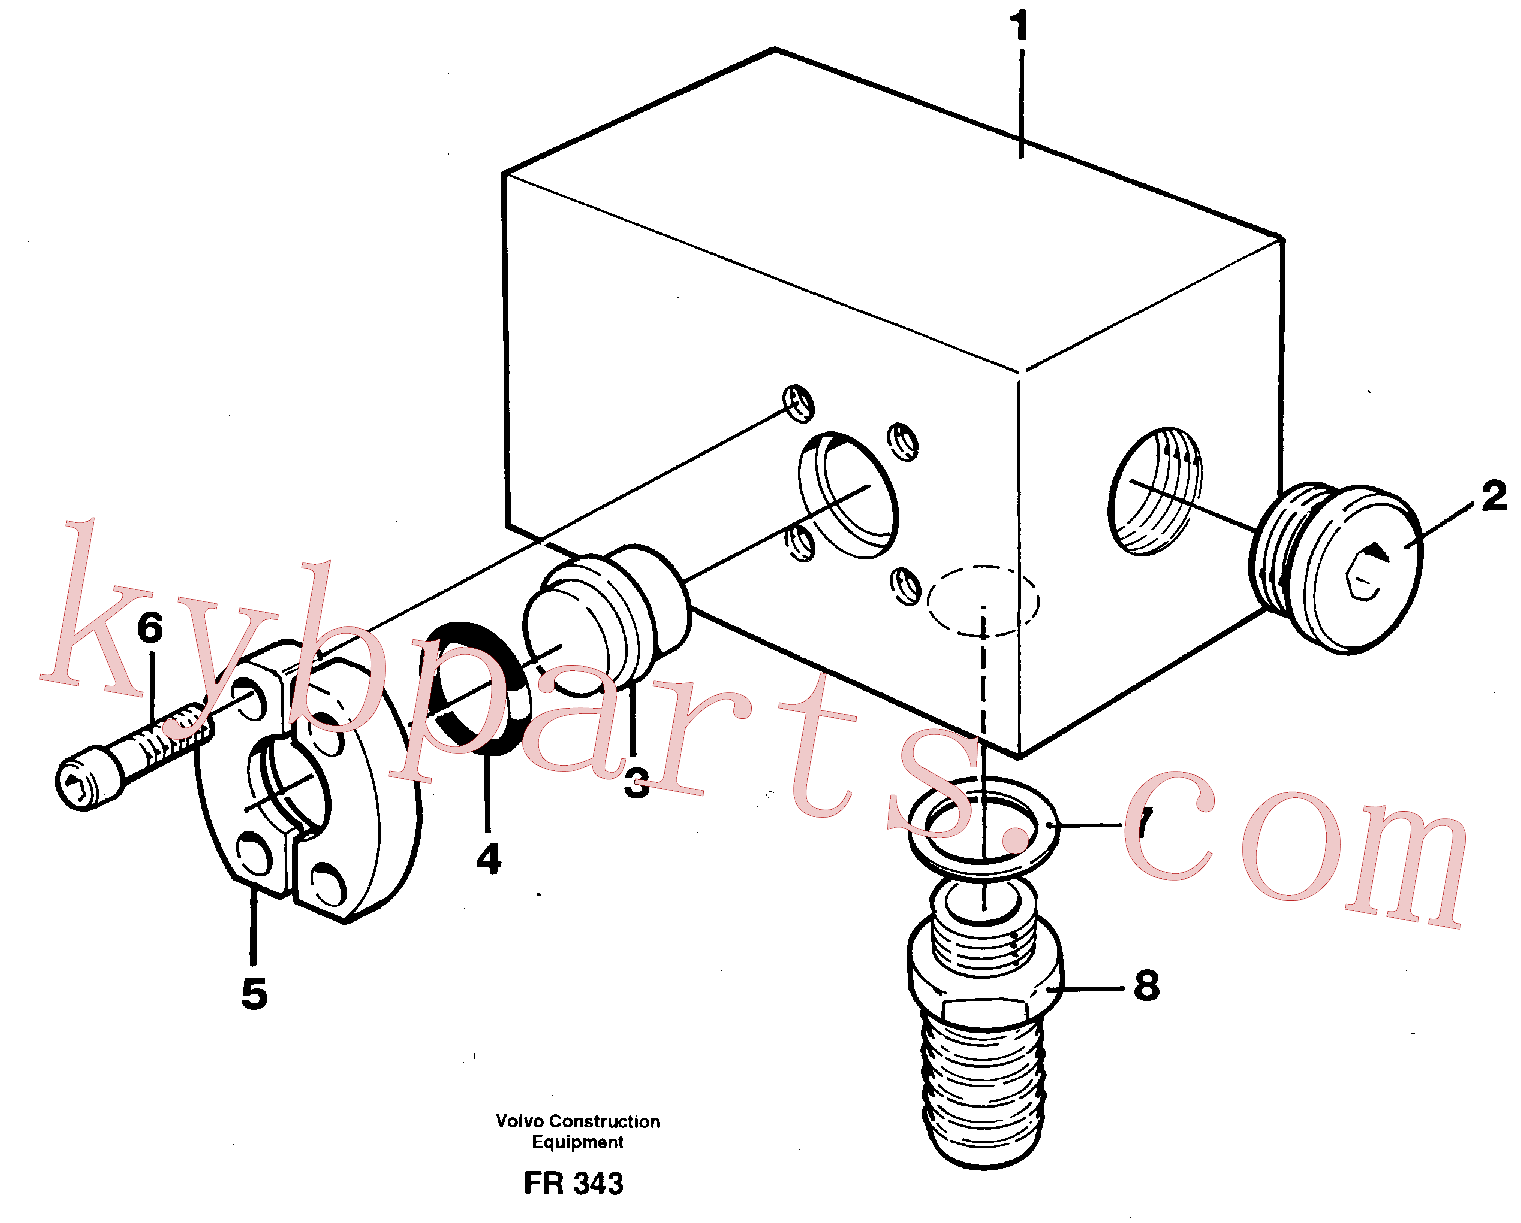 VOE14251114 for Volvo Adapter(FR343 assembly)